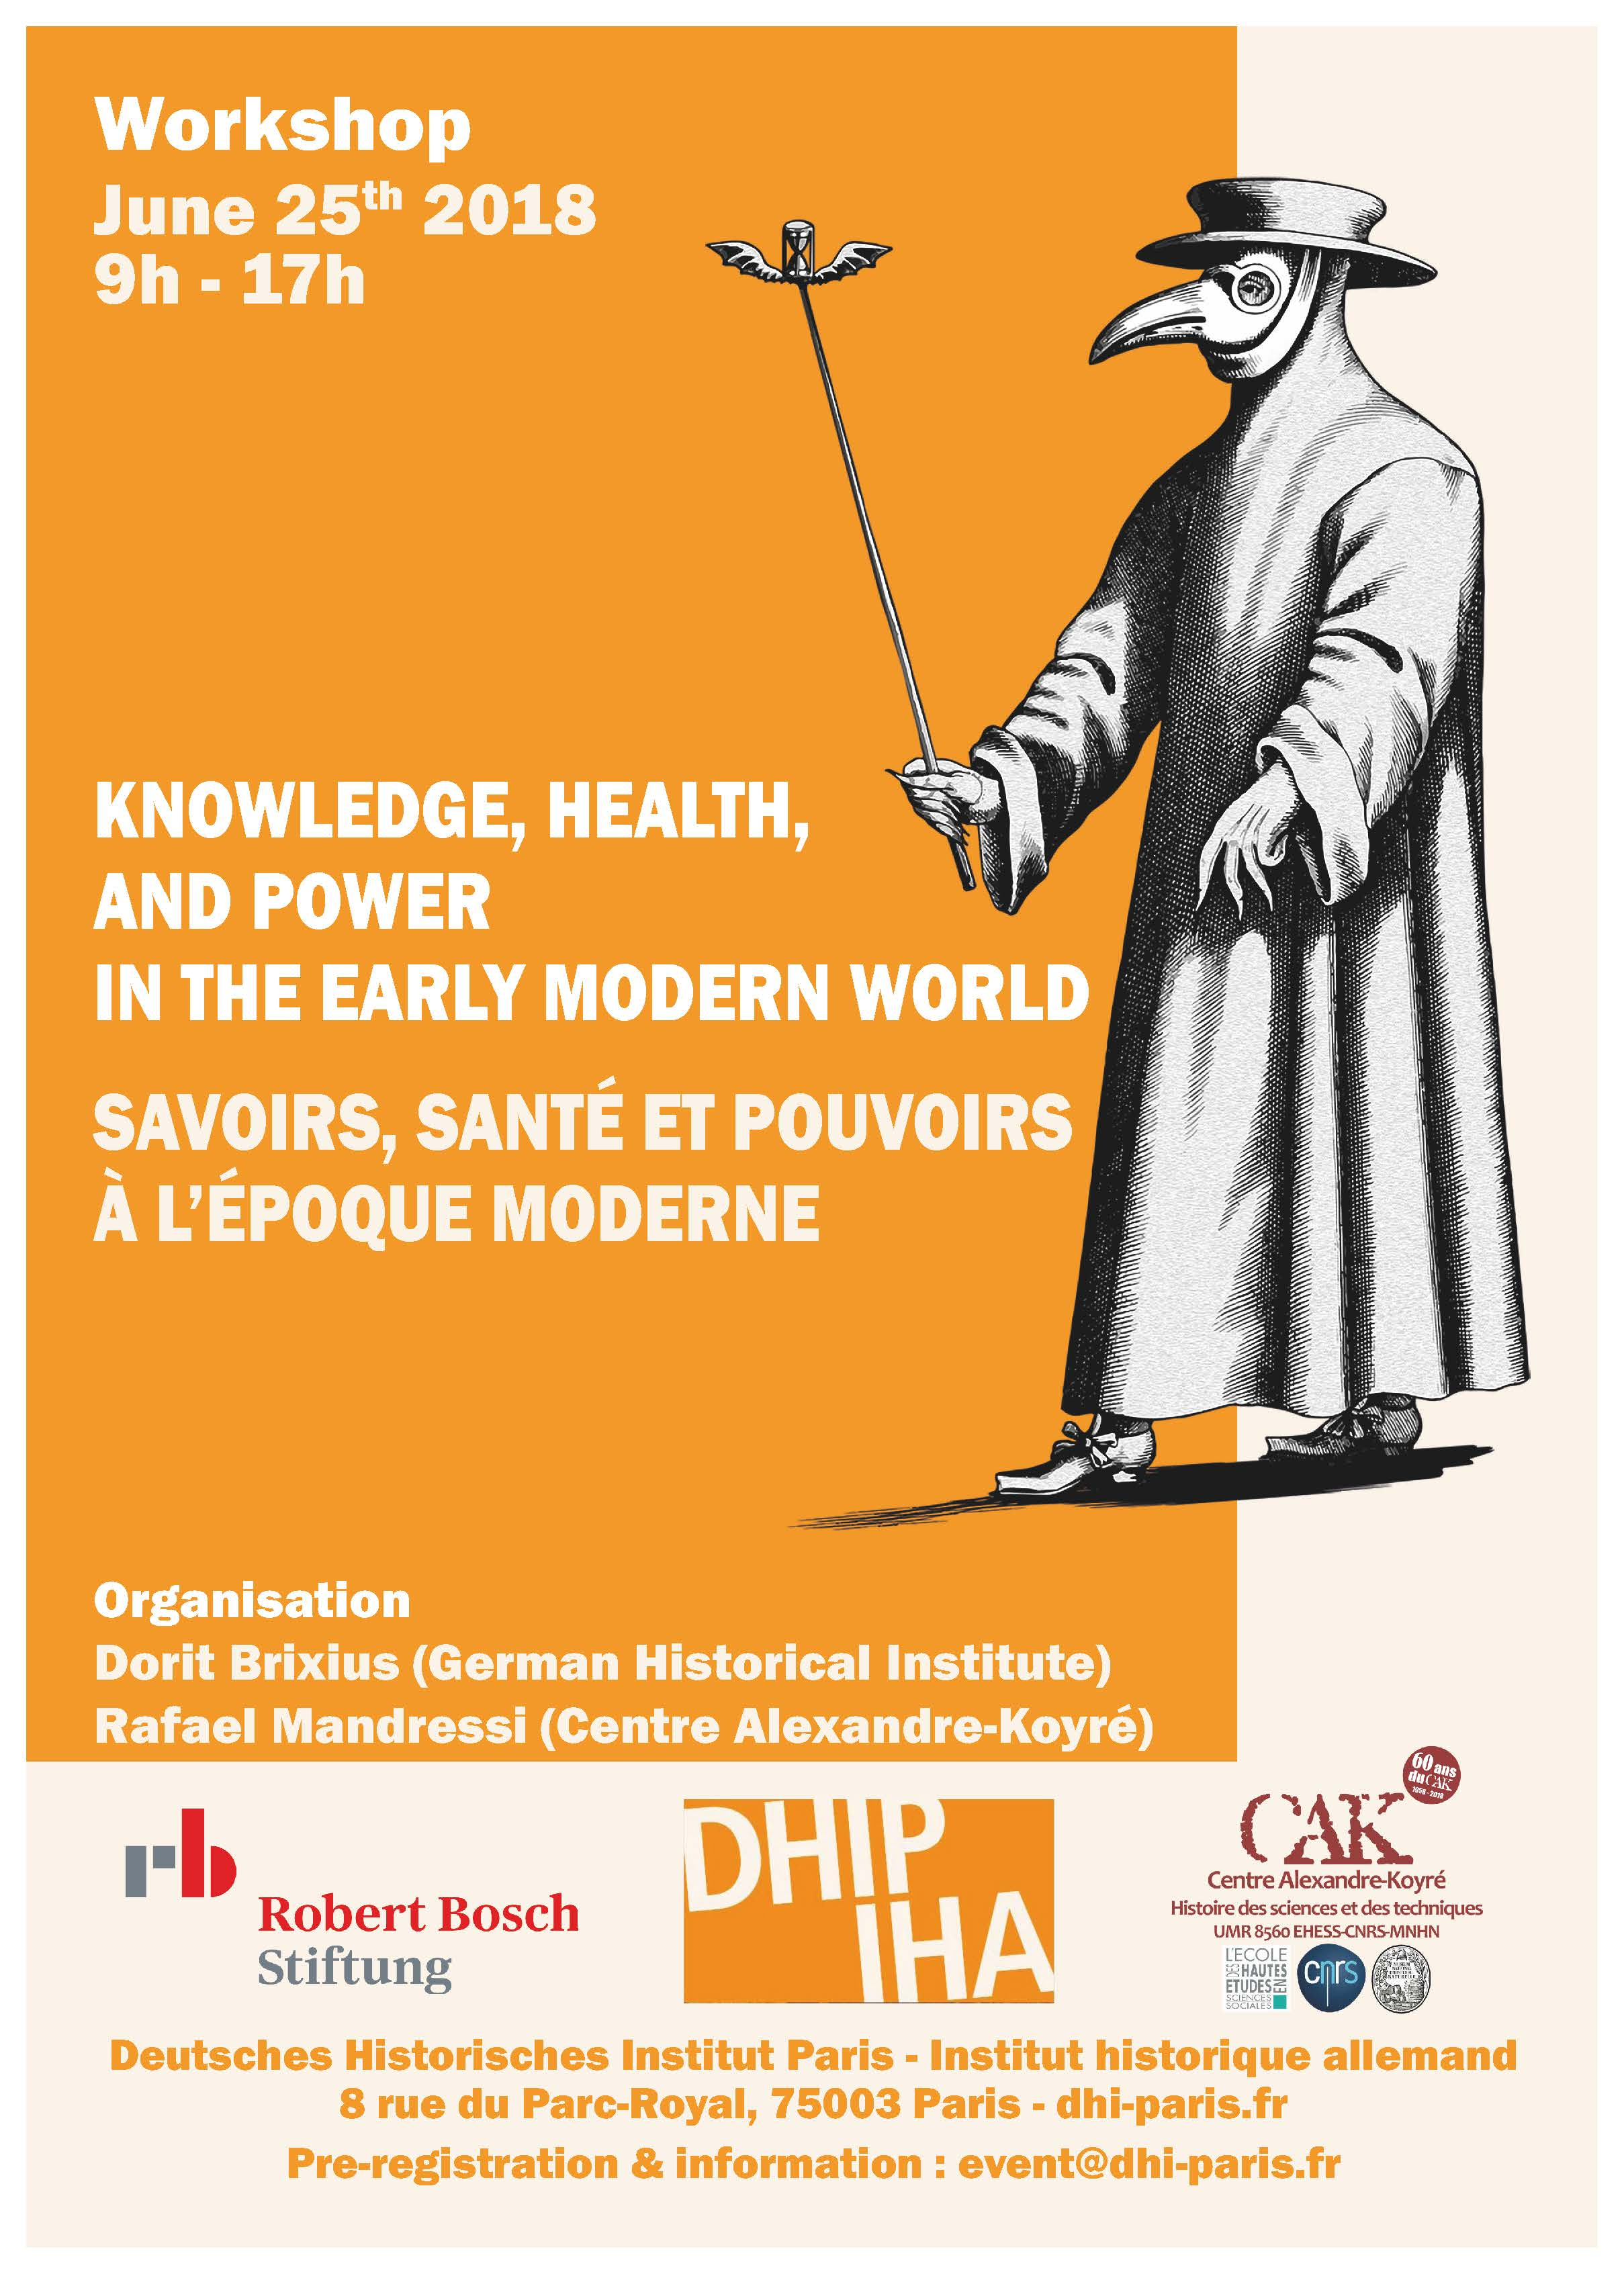 Journée d'études - Savoirs, santé et pouvoirs à l'époque moderne / Knowledge, health, and power in the early modern world